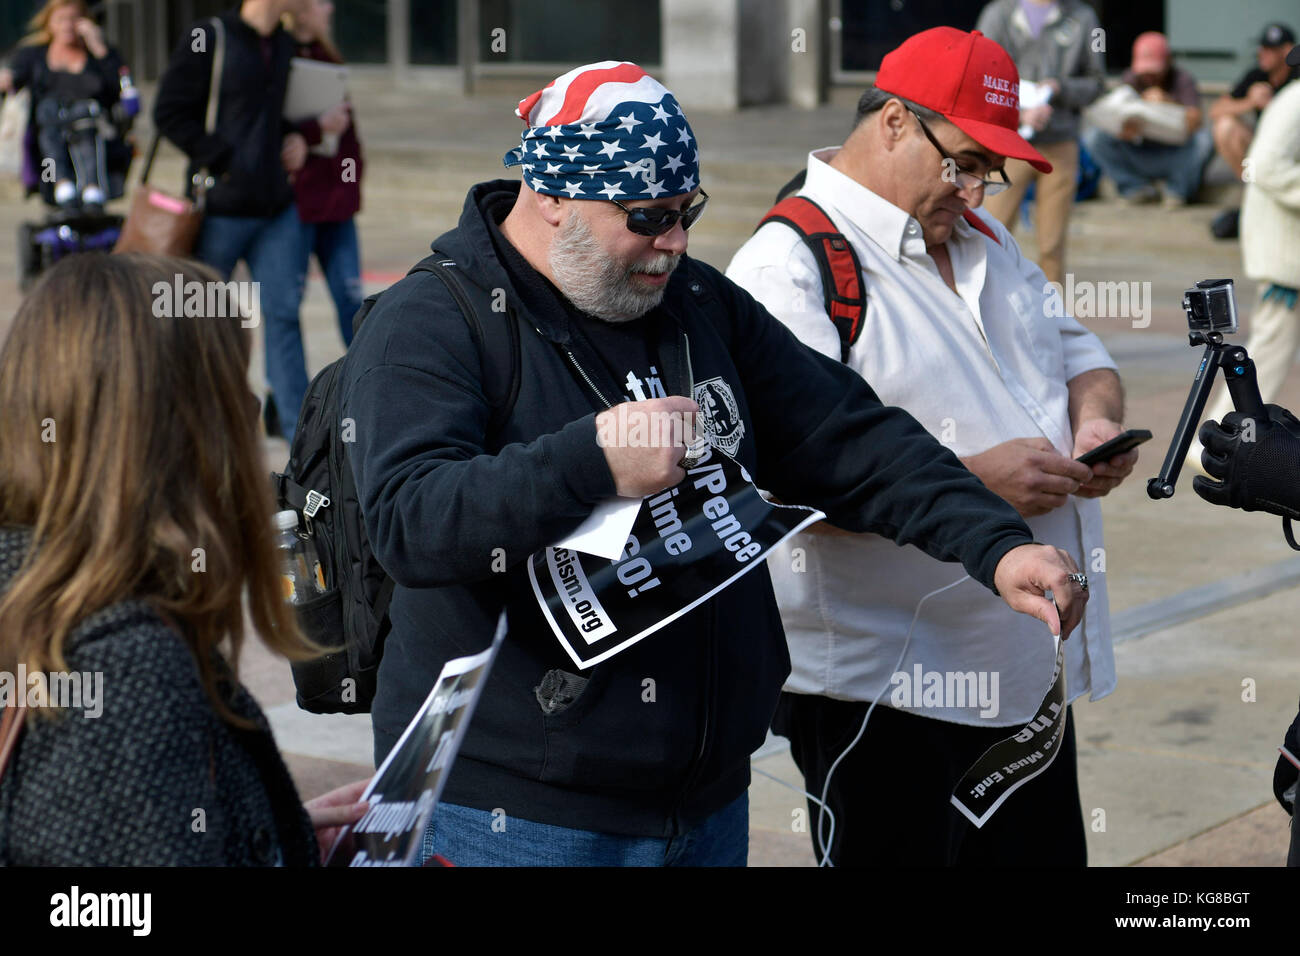 Philadelphia, United States. 04th Nov, 2017. After getting counter-protestors tear anti-Trump/Pence flyers in an - Stock Image